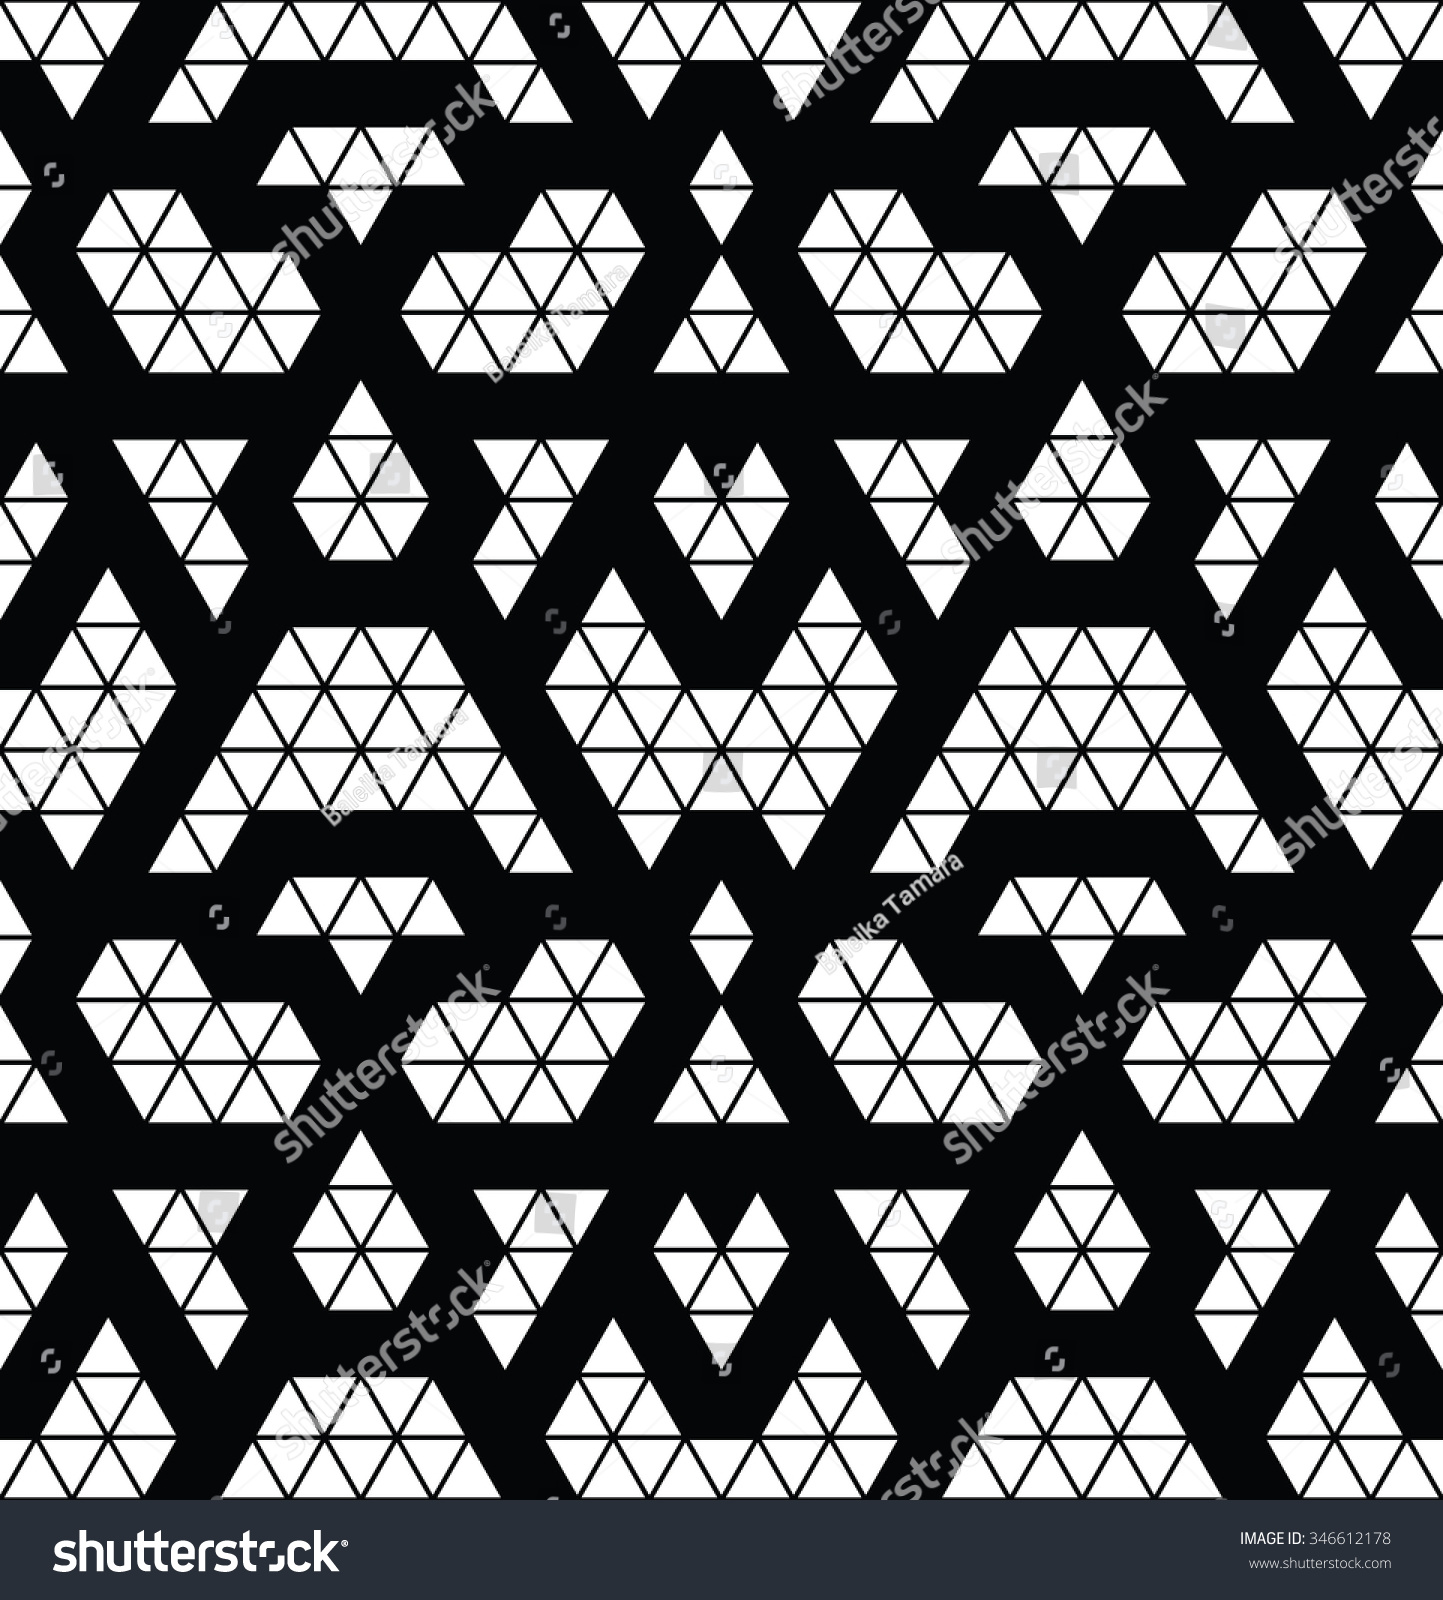 Tribal Monochrome Lace Trendy Modern Pattern Stock Vector 346612178 Shutterstock